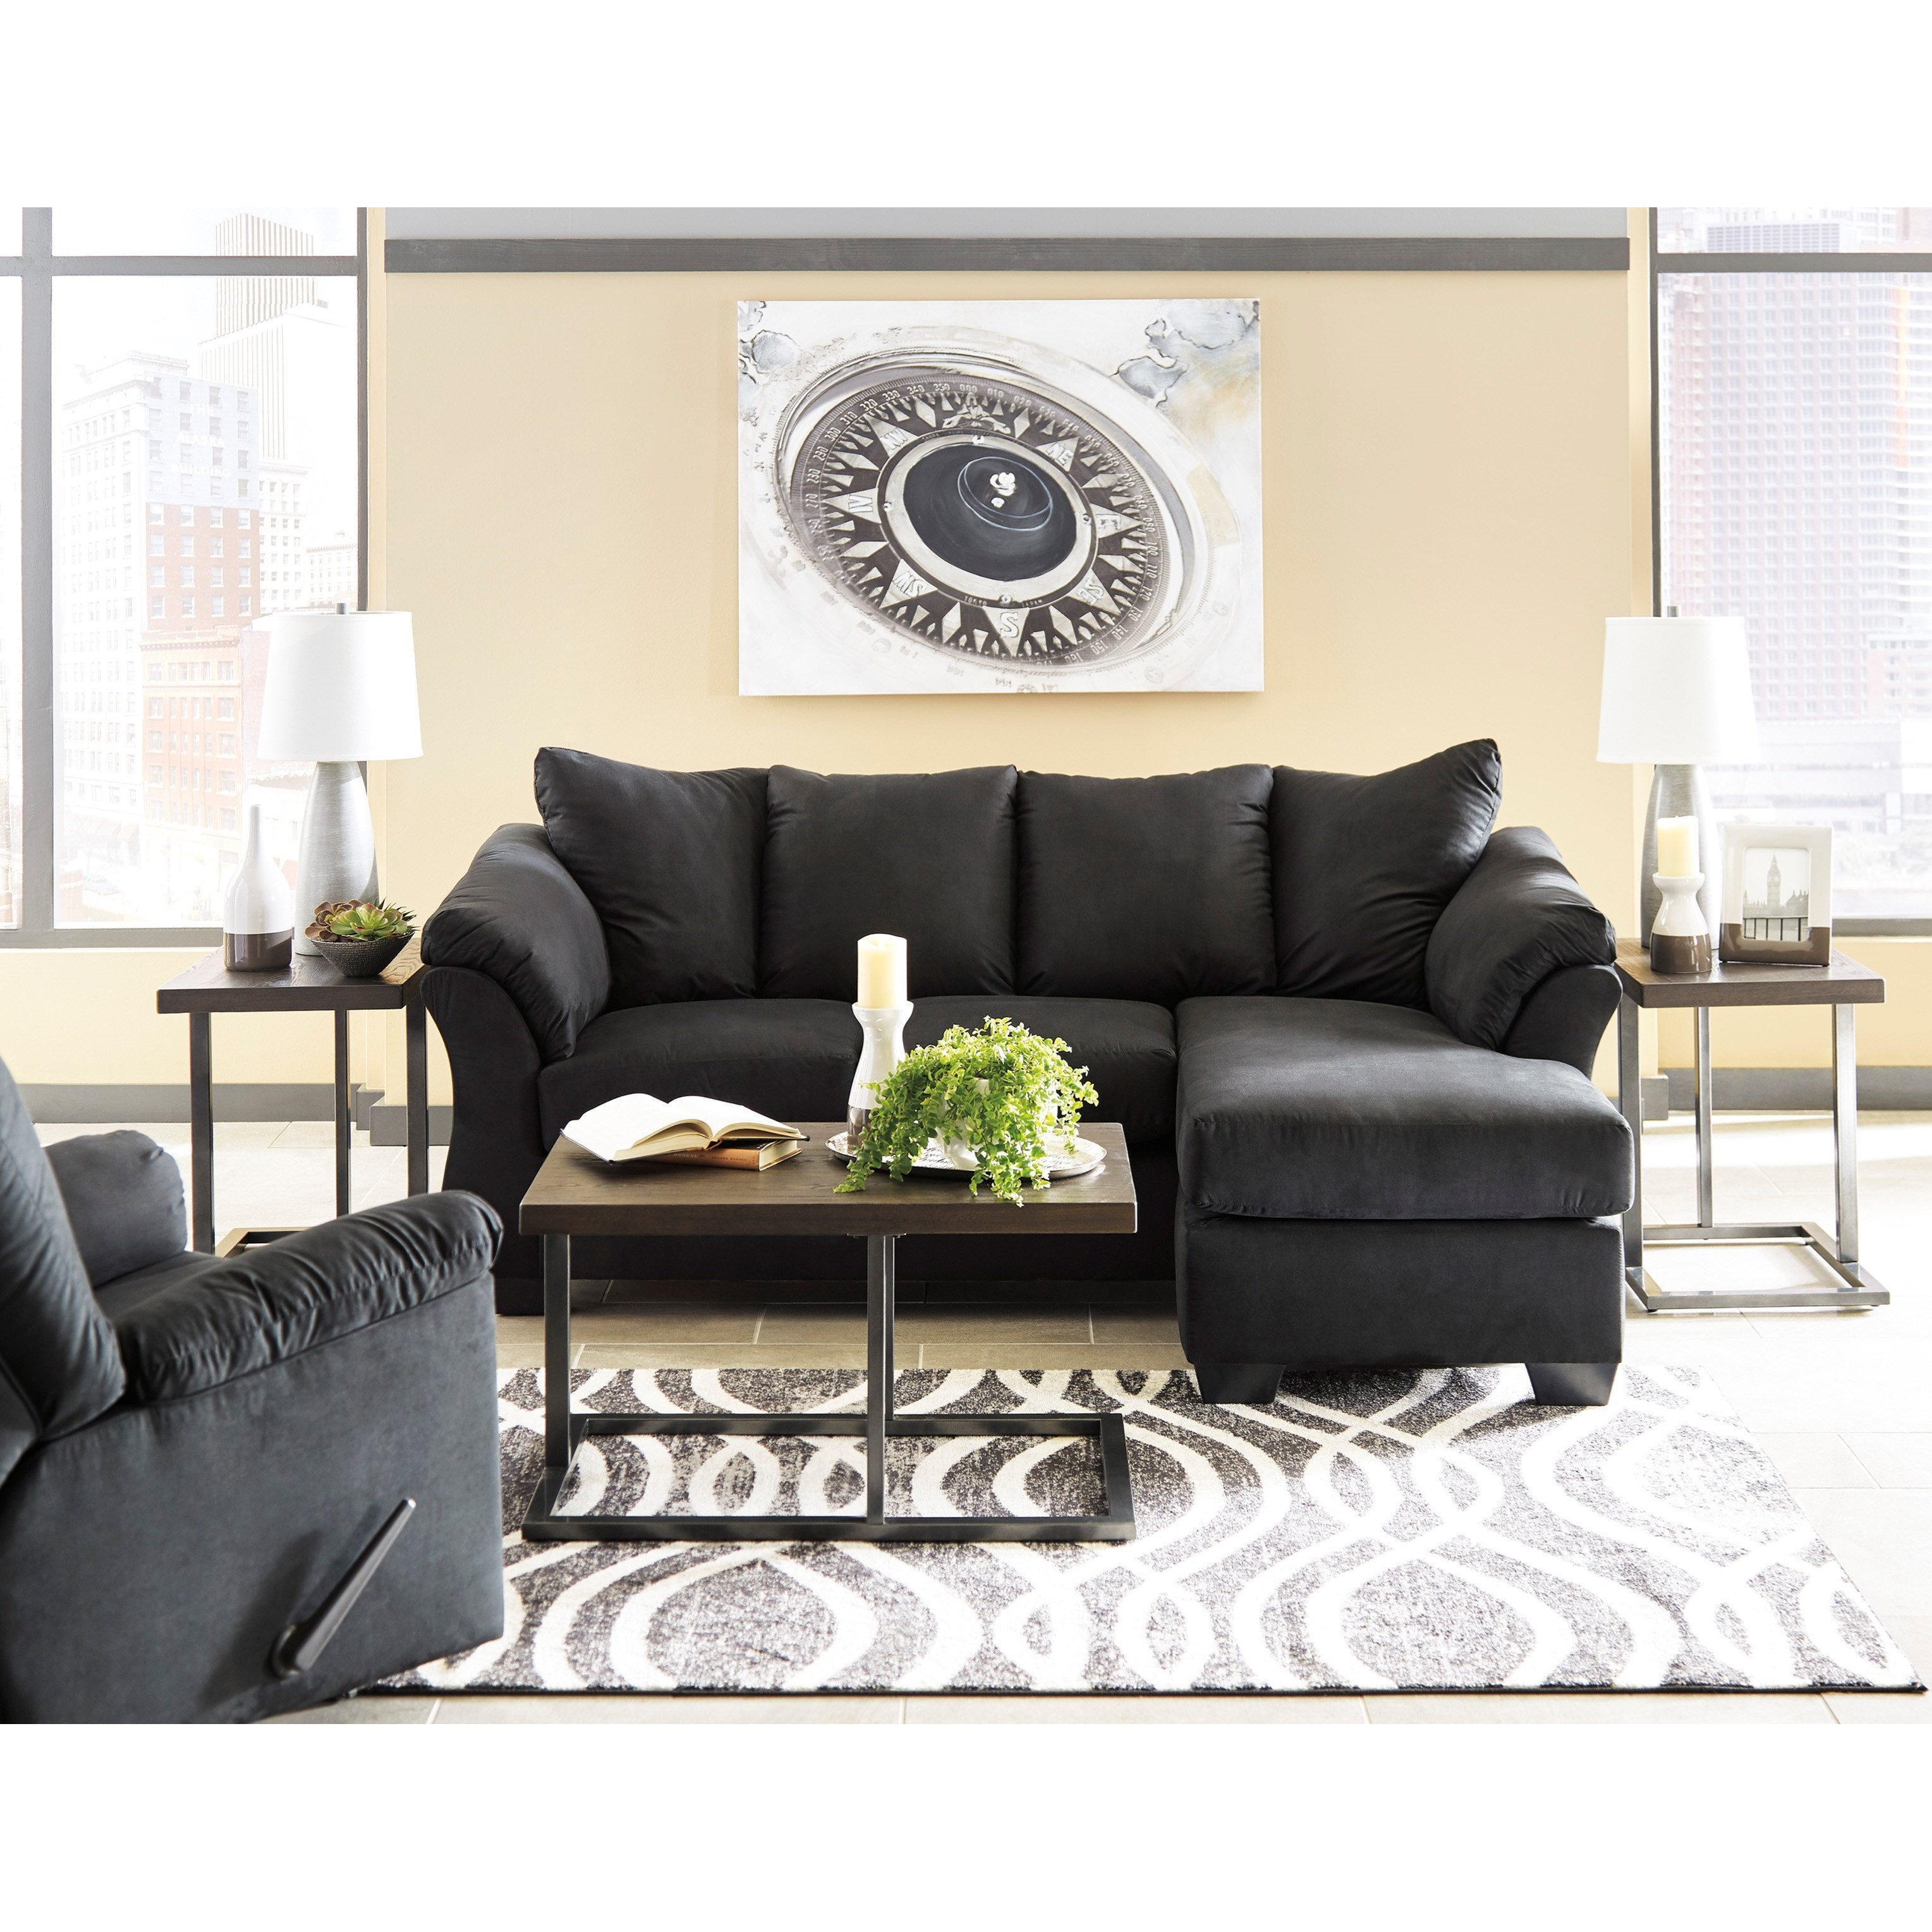 Sofa Pillows Contemporary: Contemporary Sofa Chaise With Flared Back Pillows By